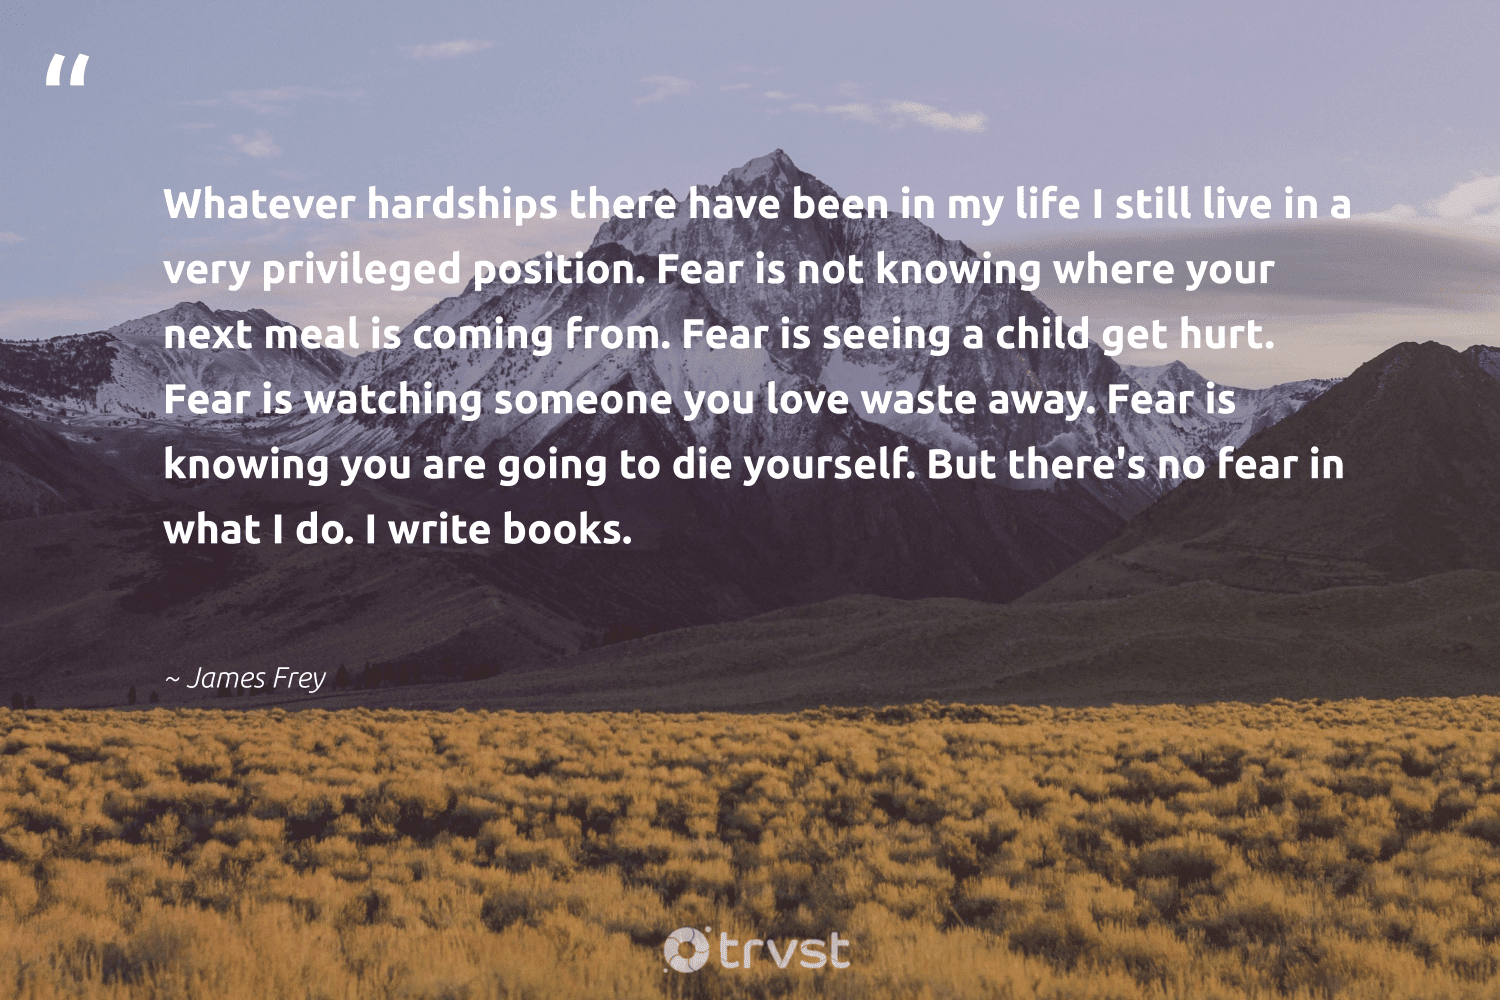 """""""Whatever hardships there have been in my life I still live in a very privileged position. Fear is not knowing where your next meal is coming from. Fear is seeing a child get hurt. Fear is watching someone you love waste away. Fear is knowing you are going to die yourself. But there's no fear in what I do. I write books.""""  - James Frey #trvst #quotes #love #waste #futureofwork #dotherightthing #nevergiveup #dogood #begreat #socialimpact #softskills #ecoconscious"""